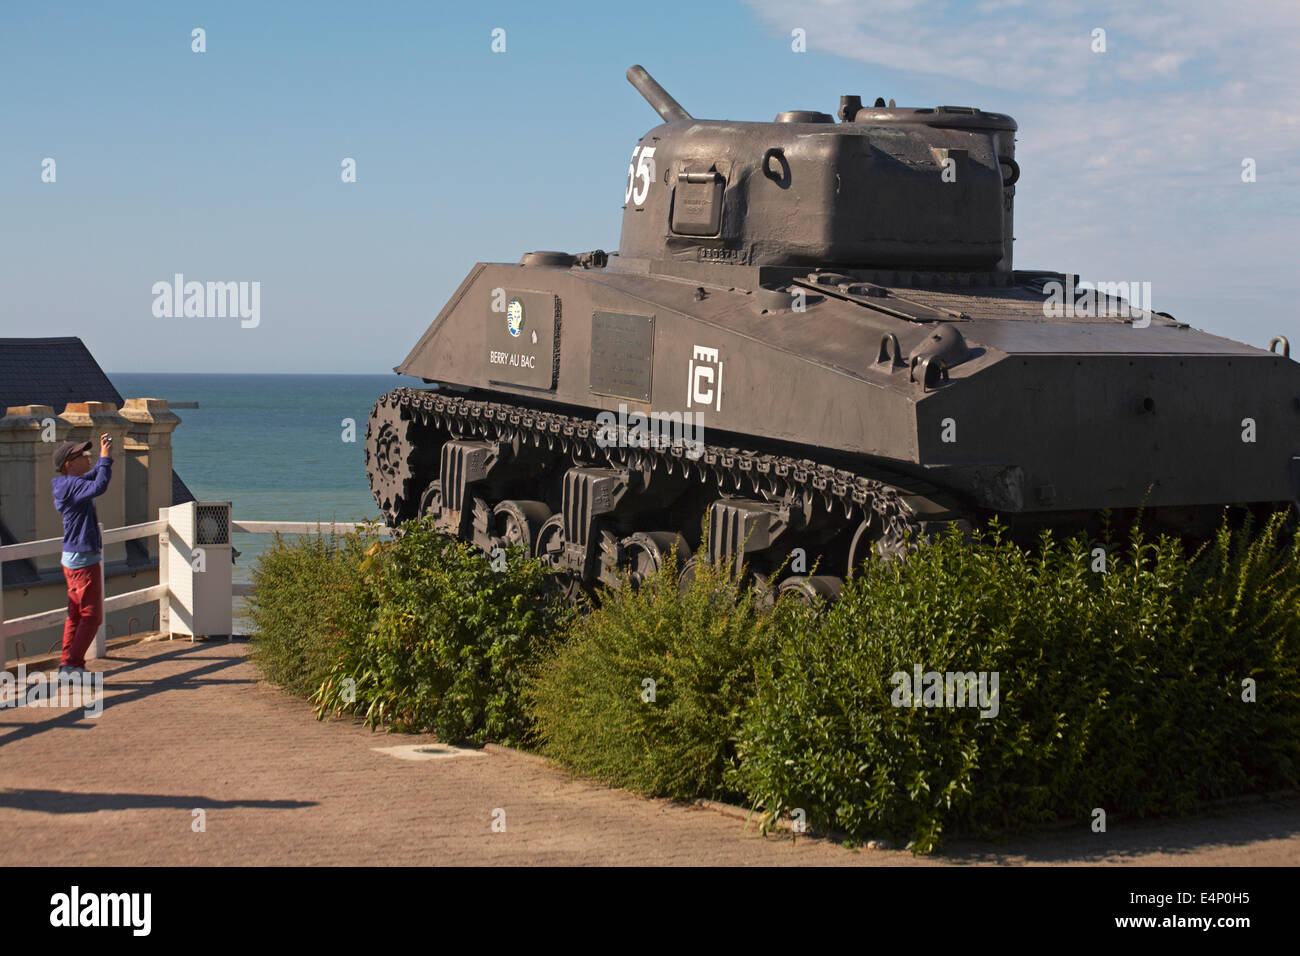 Boy taking photo of French 2nd DB Sherman tank Berry Au Bac on display at Arromanches, Normandy, France in July - Stock Image